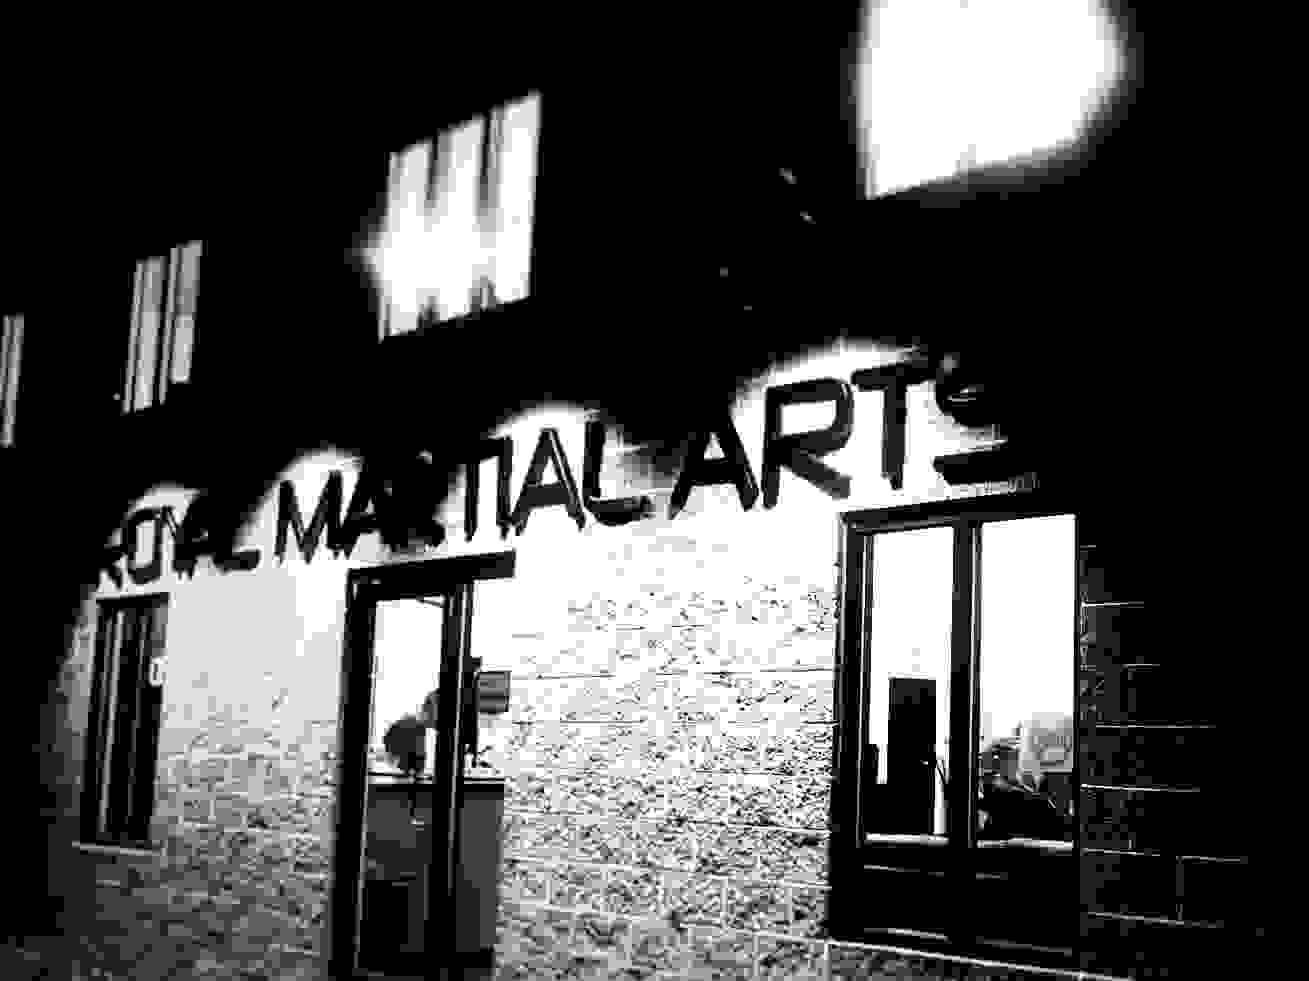 Royal Martial Arts Entrance